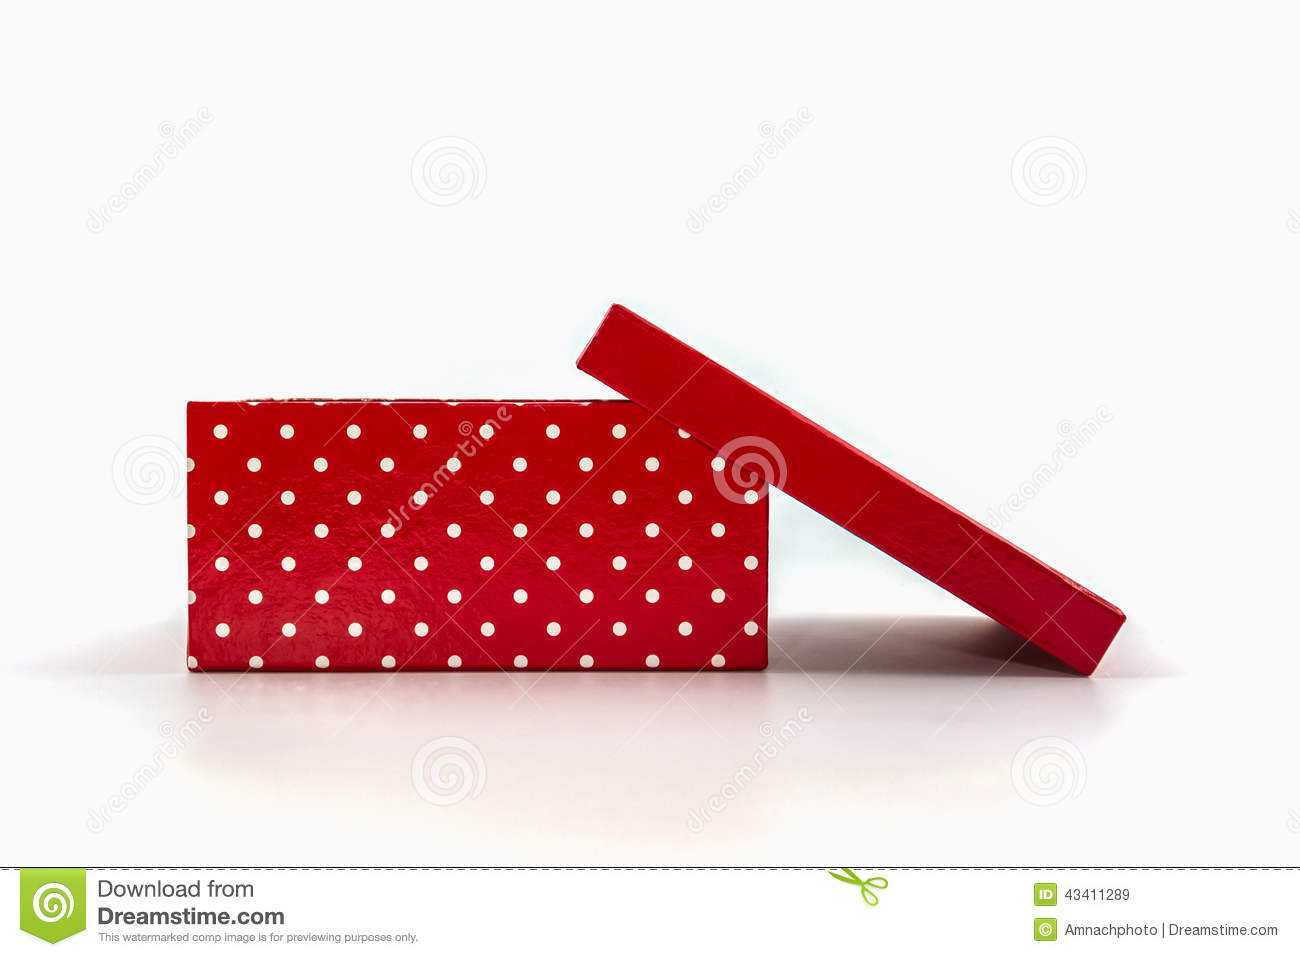 Red polka dots box, with clipping path.